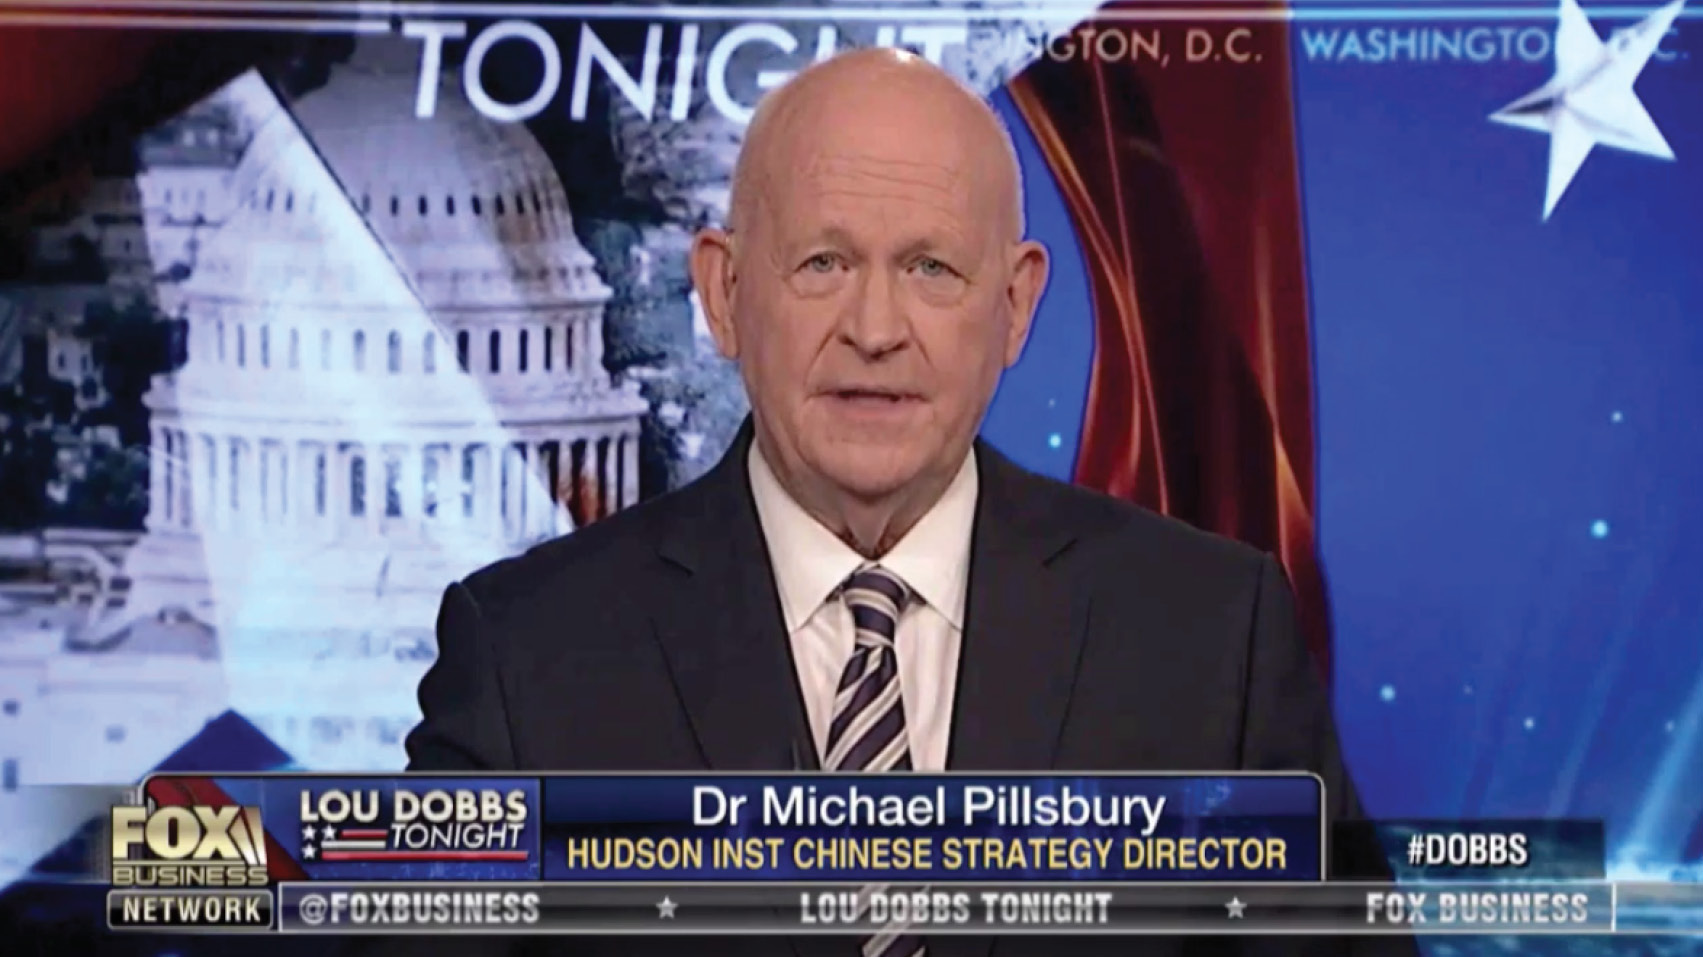 In an interview on Fox Business, Michael Pillsbury discusses the undersea cable project connecting the U.S. to China and Google's relationship with the Chinese.